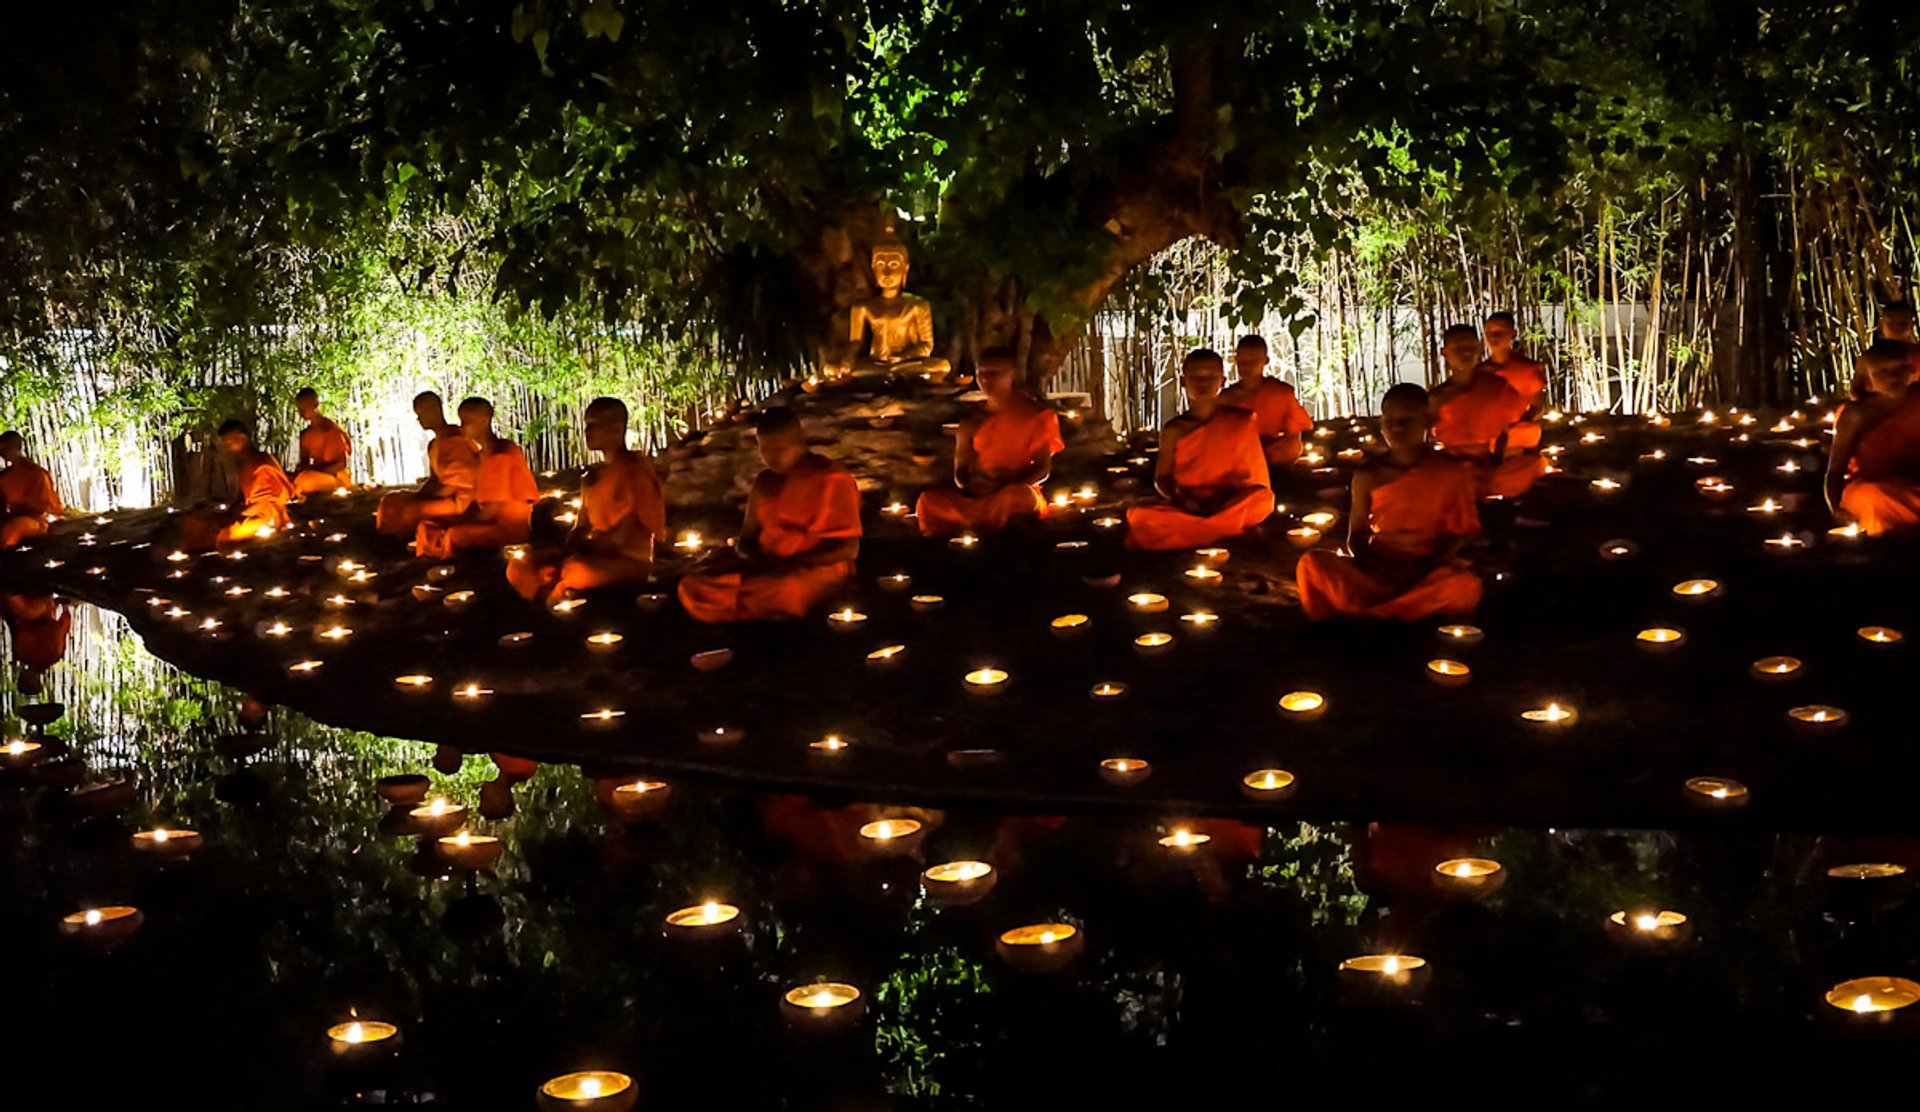 Visakha Bucha Day in Thailand 2020 - Best Time